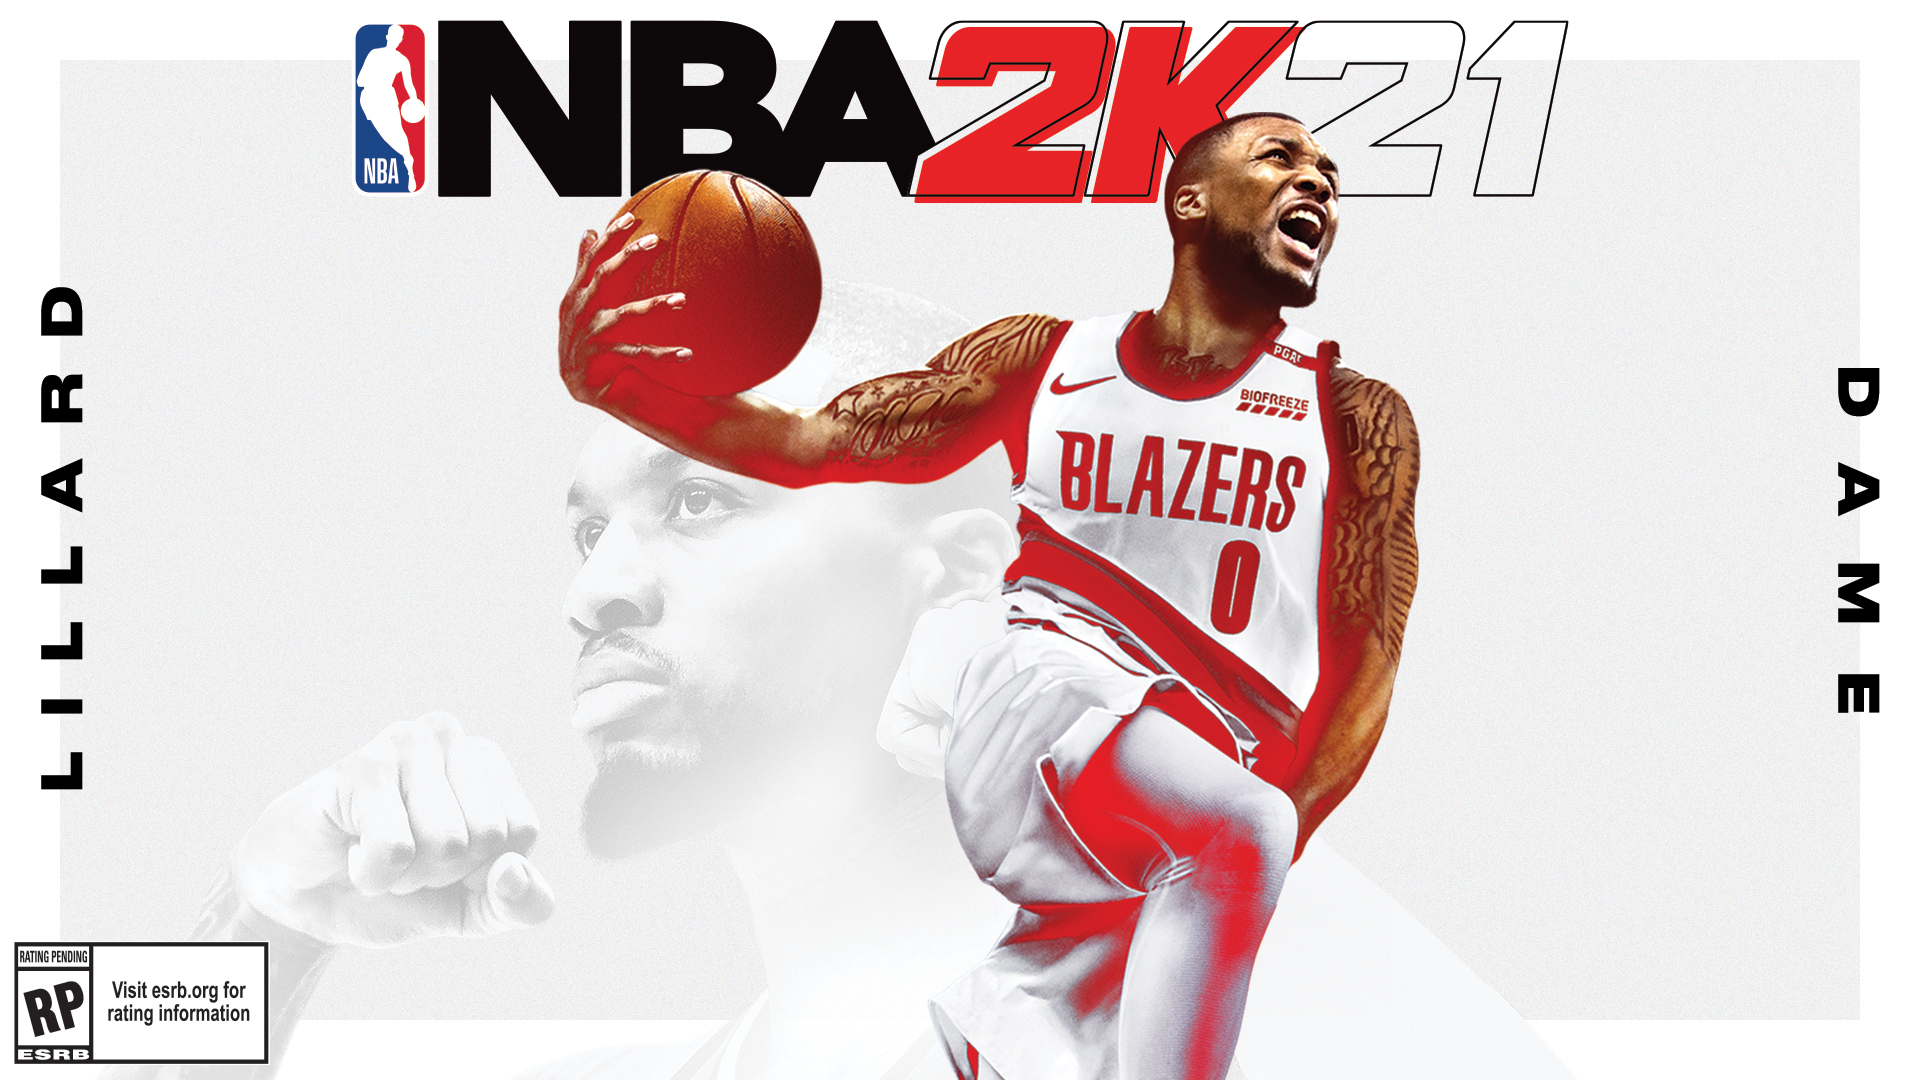 Nba 2k21 Review Maxed Out On The Current Gen Consoles